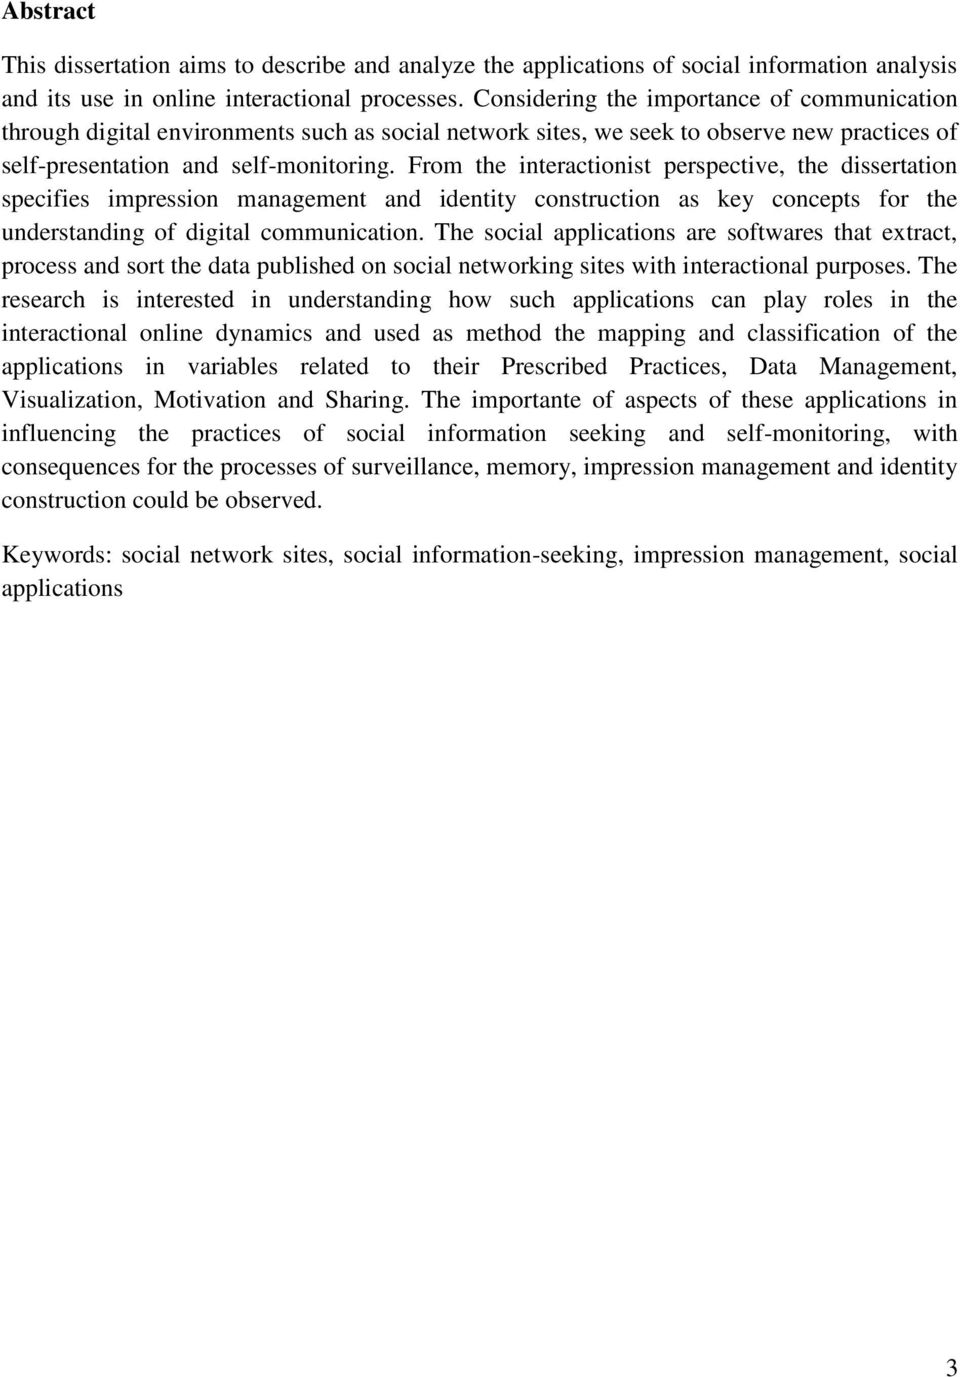 From the interactionist perspective, the dissertation specifies impression management and identity construction as key concepts for the understanding of digital communication.